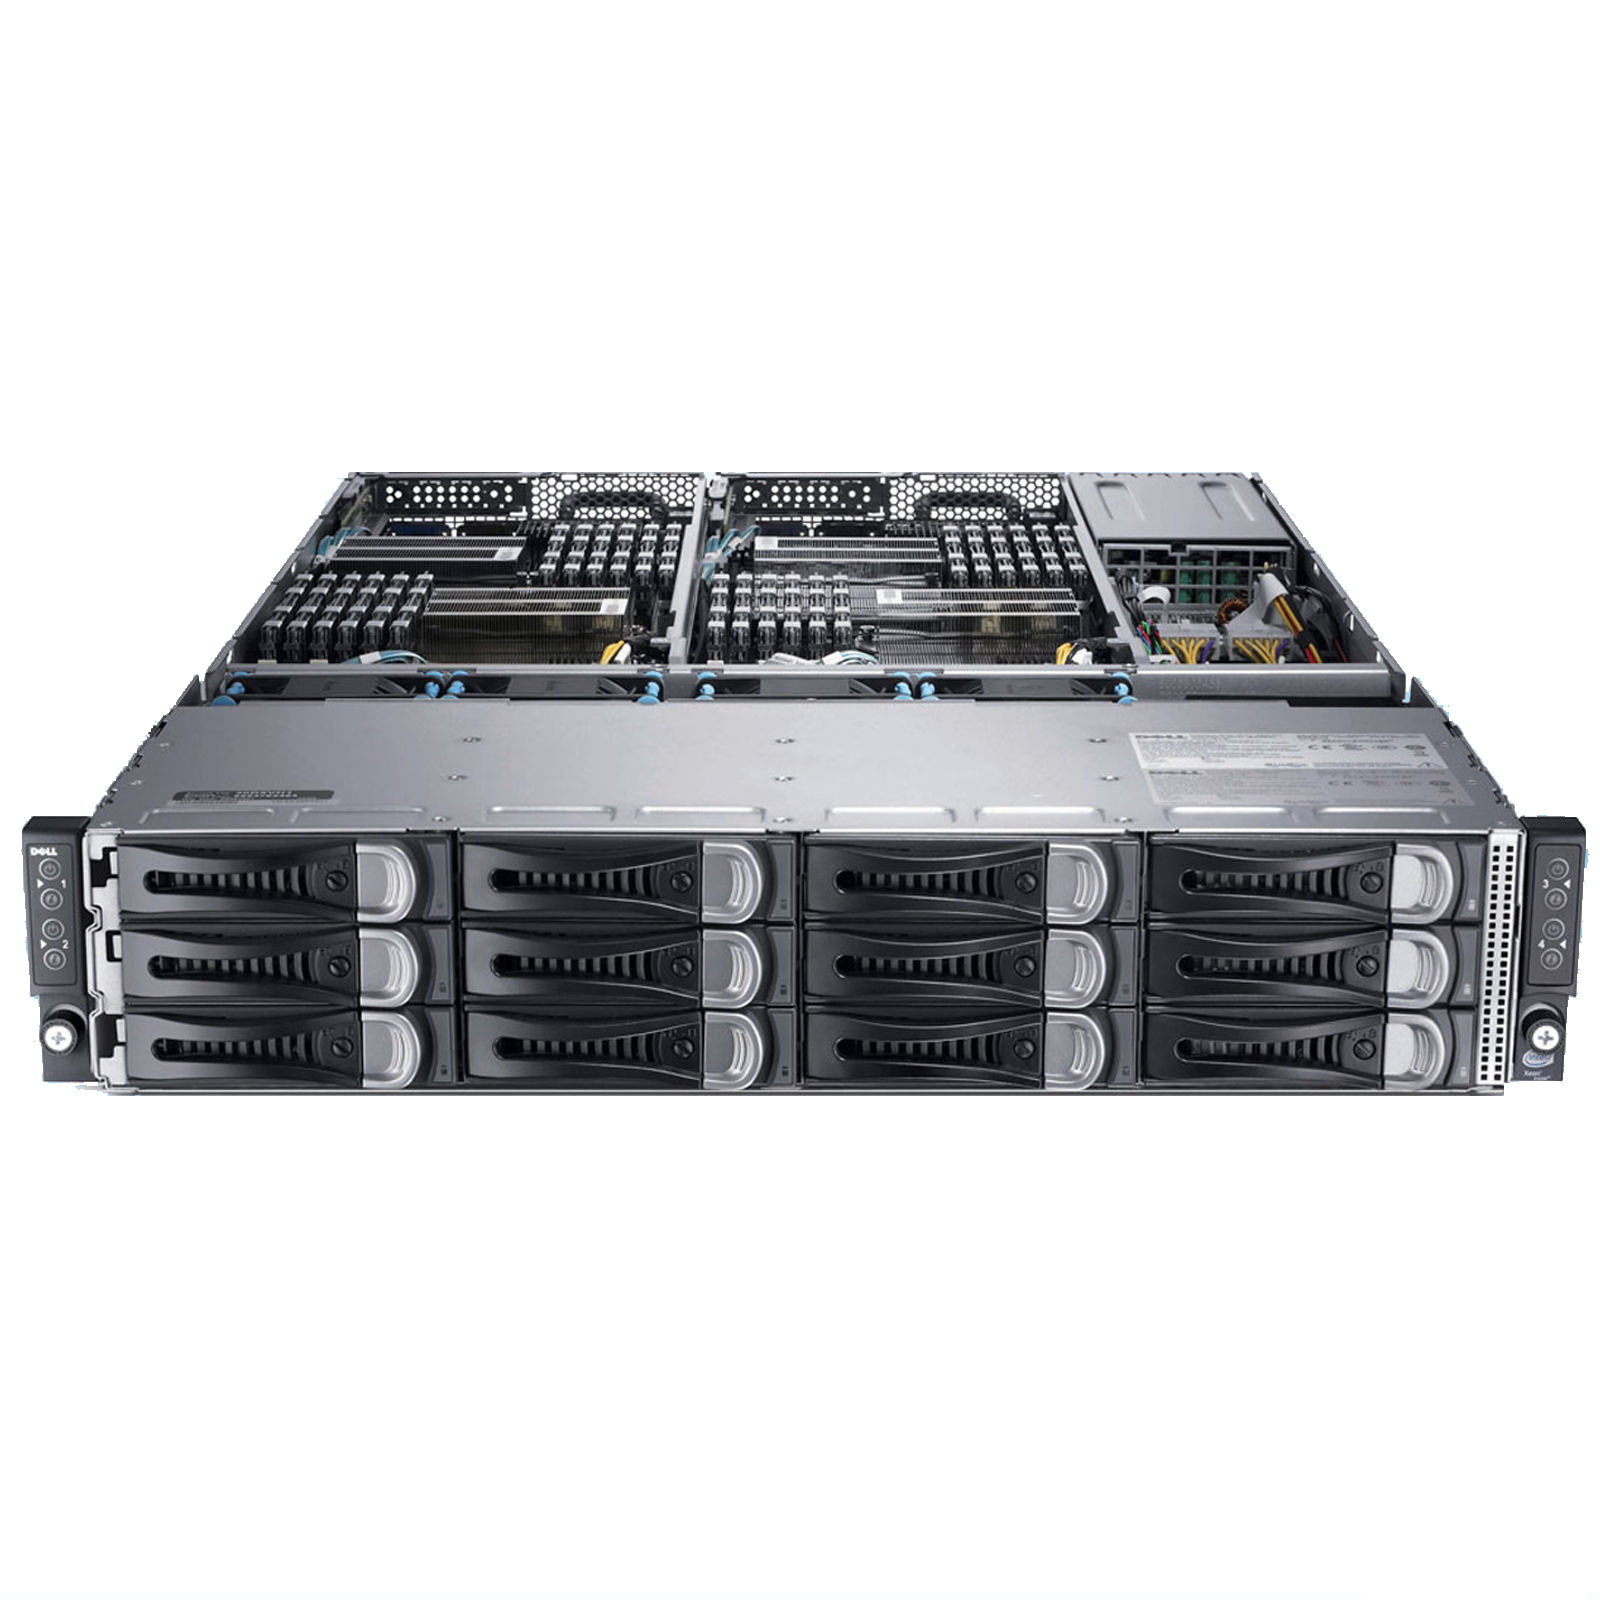 MÁY CHỦ DELL POWEREDGE C6220 E5-2670